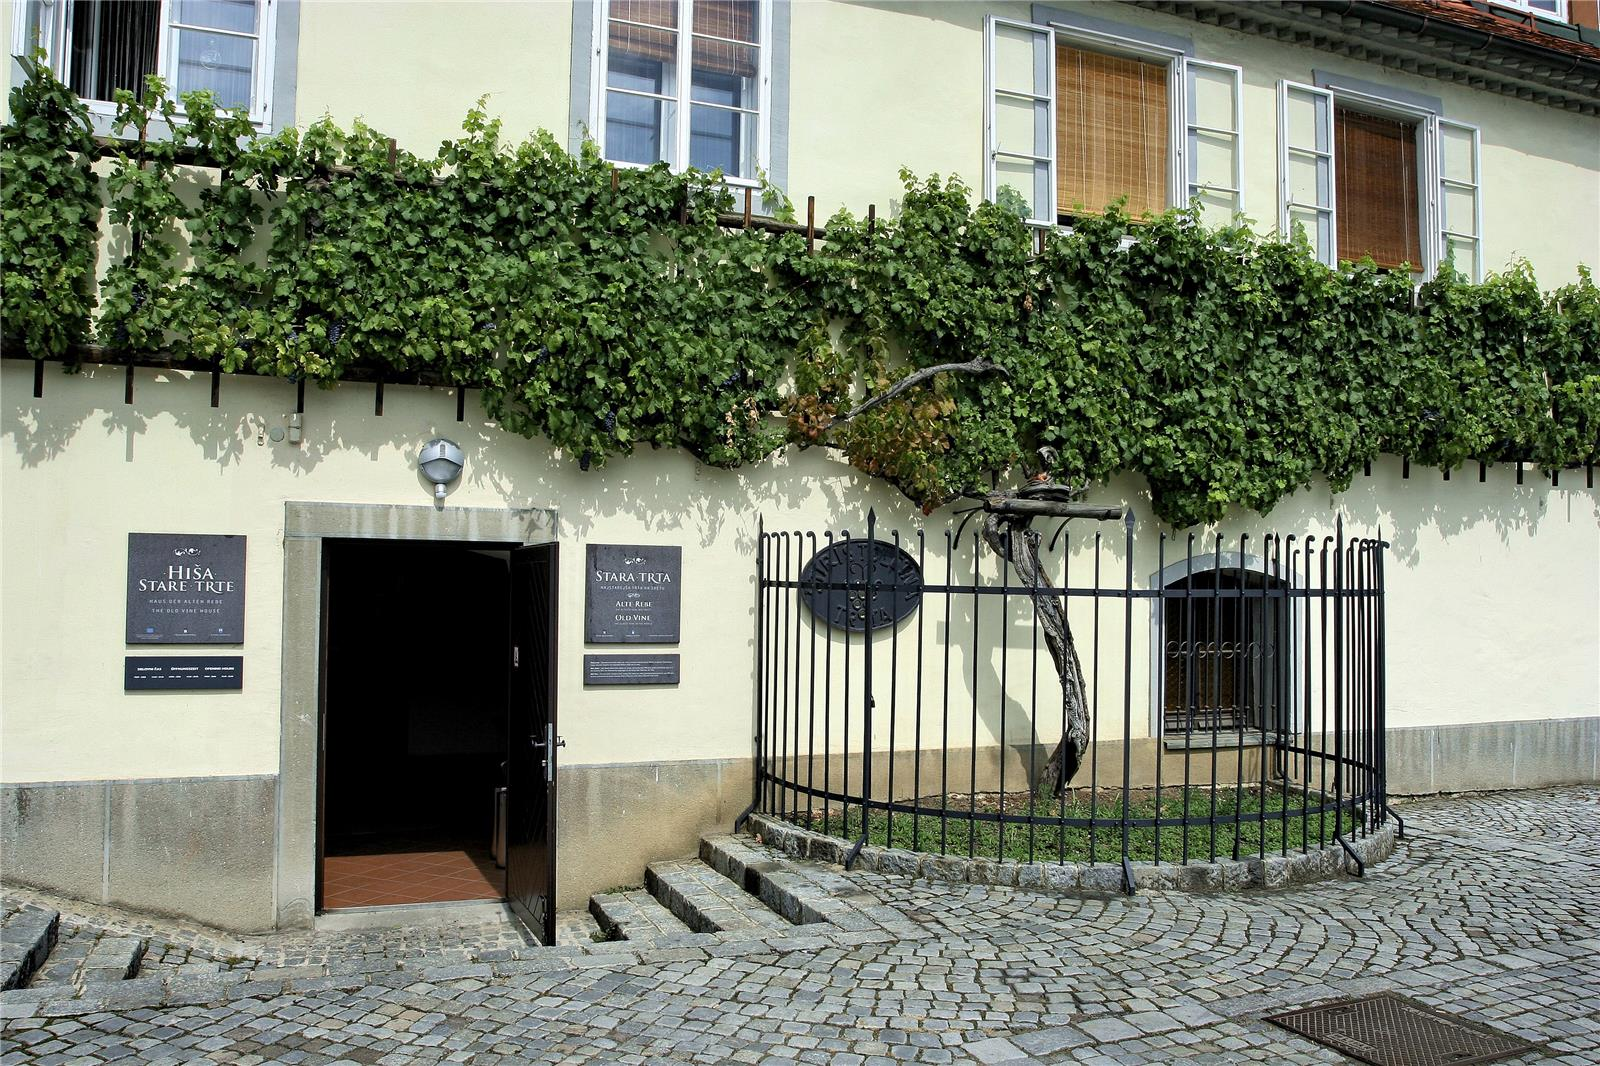 Maribor's Old Vine House and oldest vine in the world